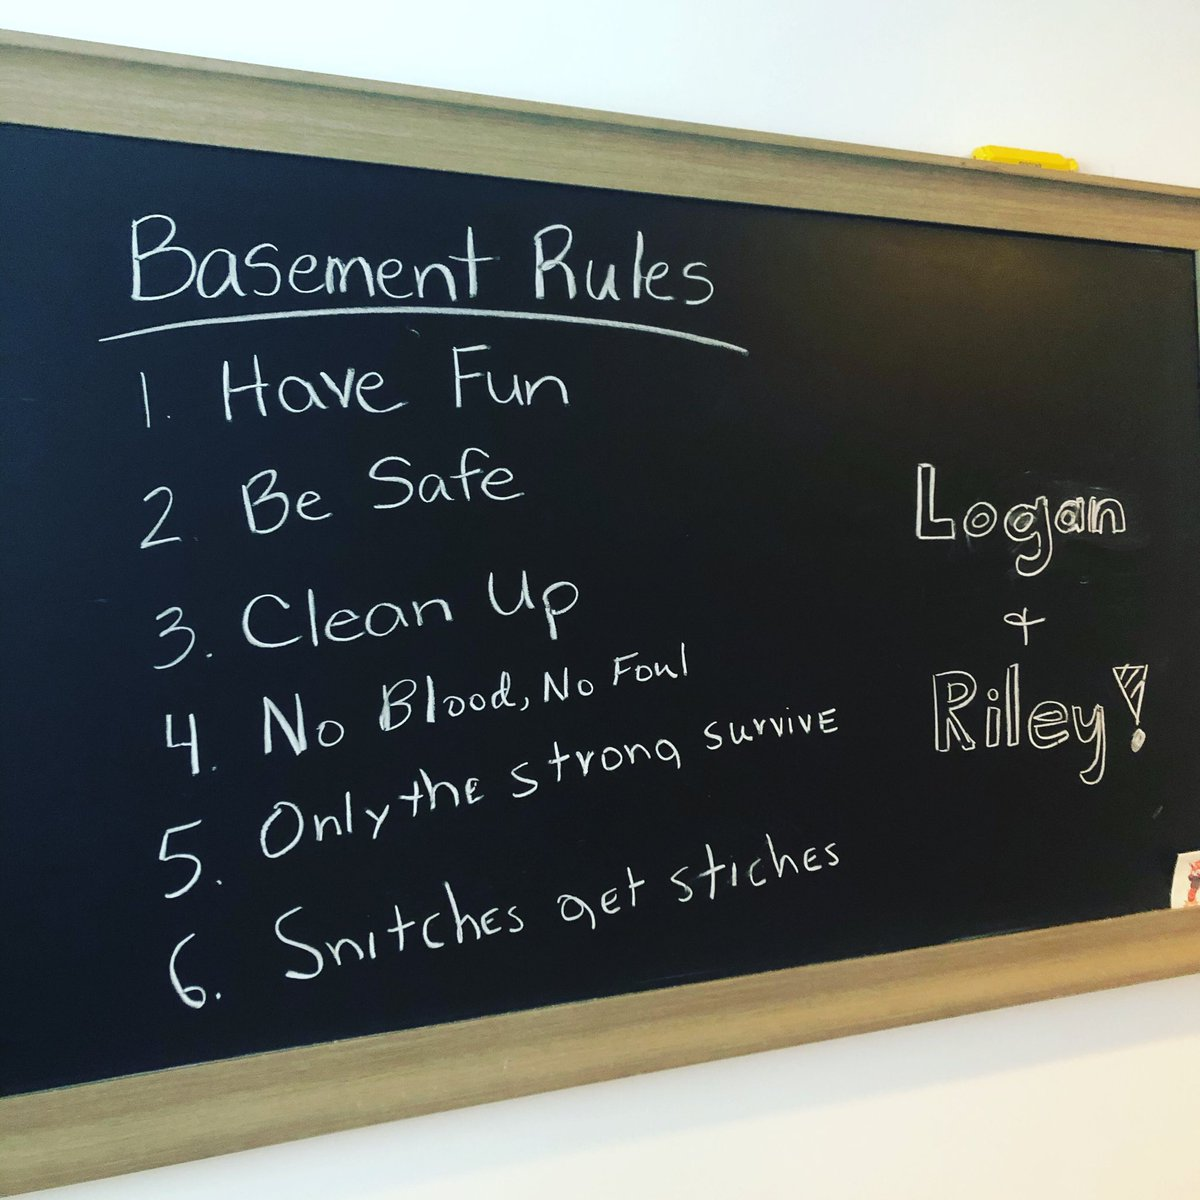 After a week of living the #QuarantineLife, the following rules have been added